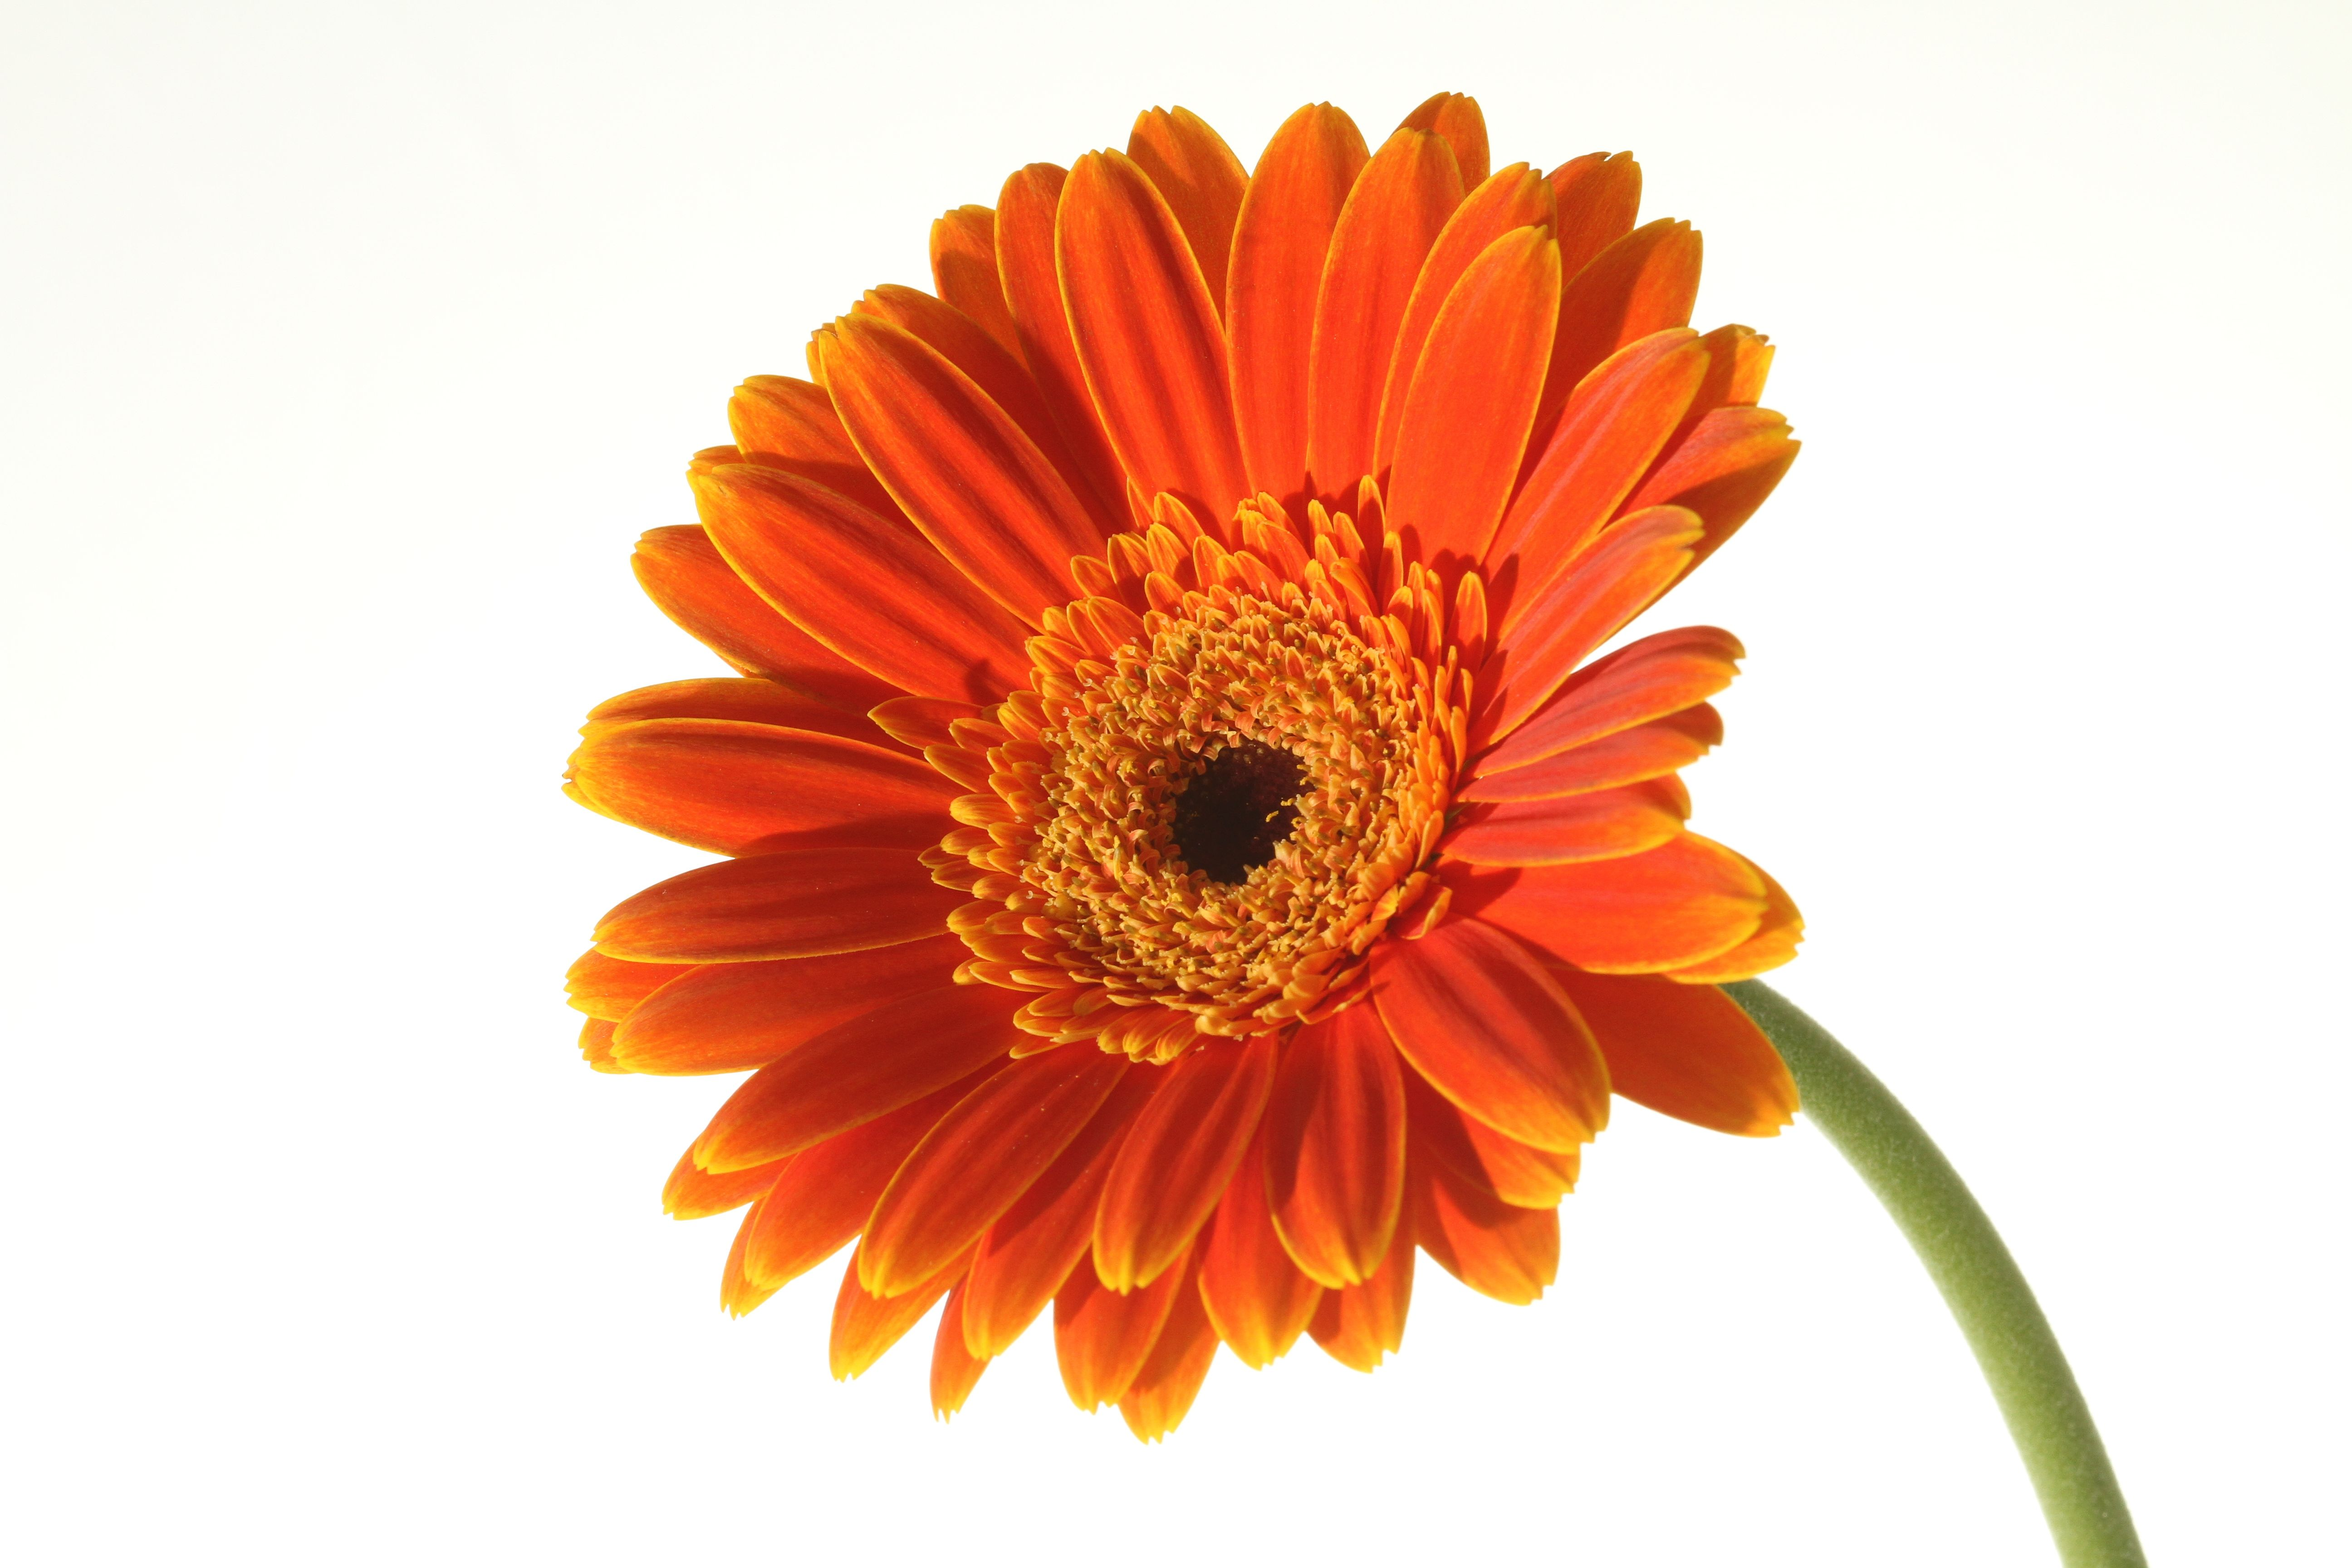 Focal length side lit gerbera against white background side lit gerbera against white background dhlflorist Image collections